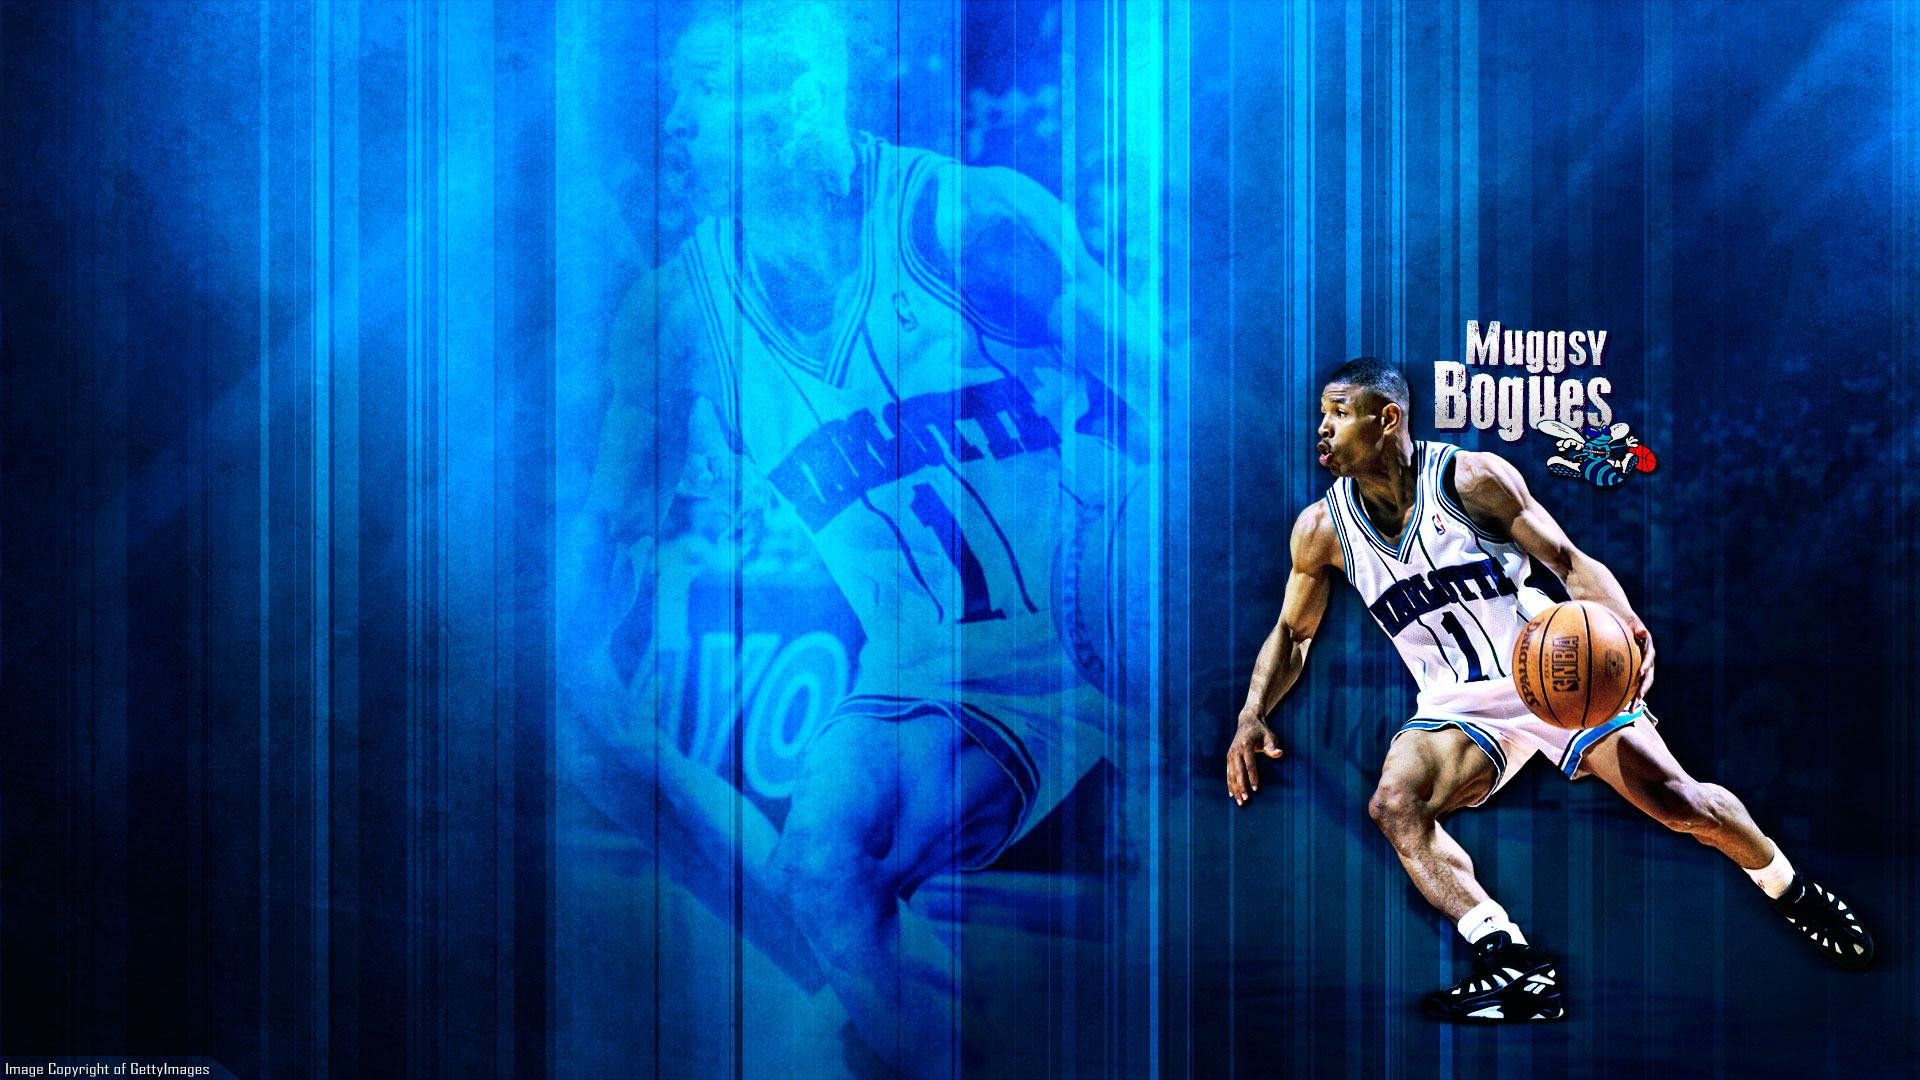 Charlotte Hornets Images Muggsy Bogues Wallpaper HD And Background Photos